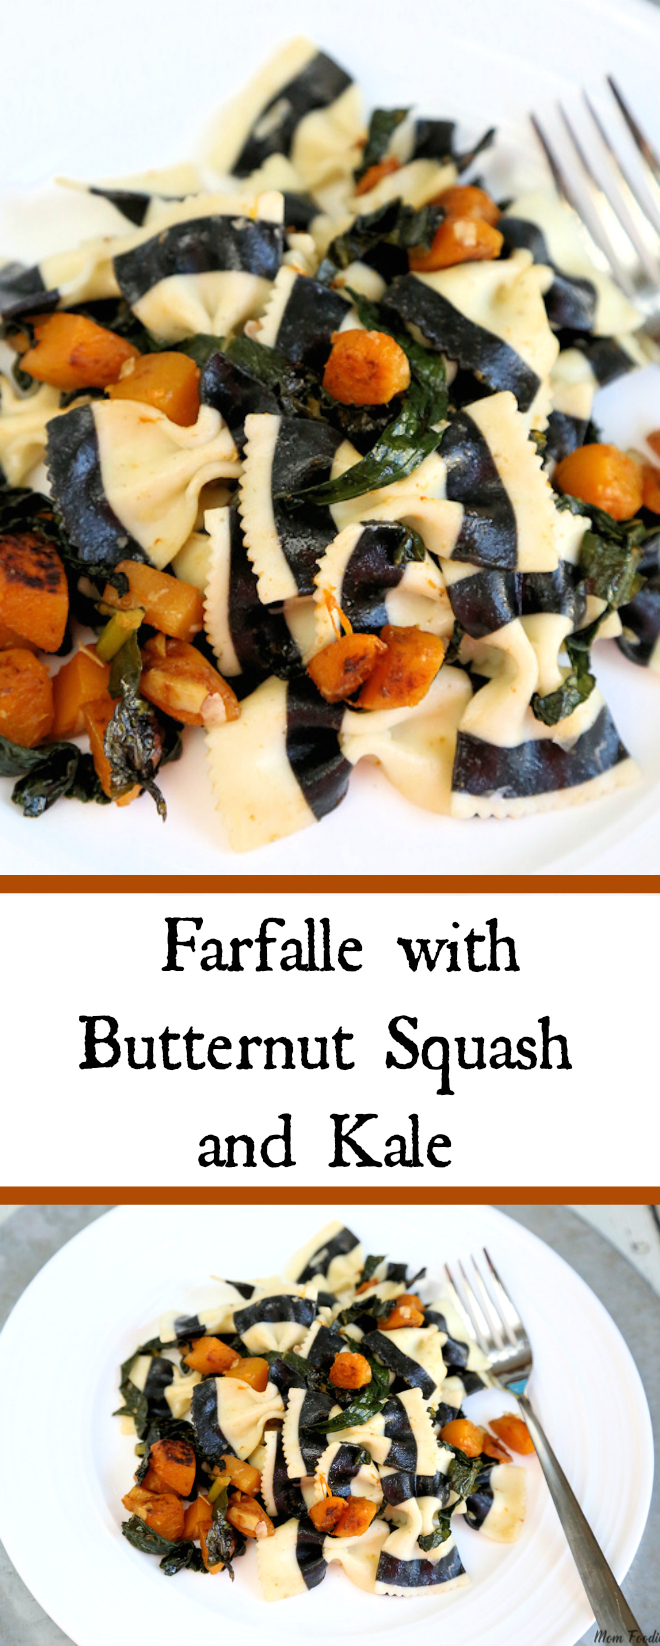 Black & White Striped Farfalle with Butternut Squash and Kale : Vegetarian Halloween Dinner Recipe